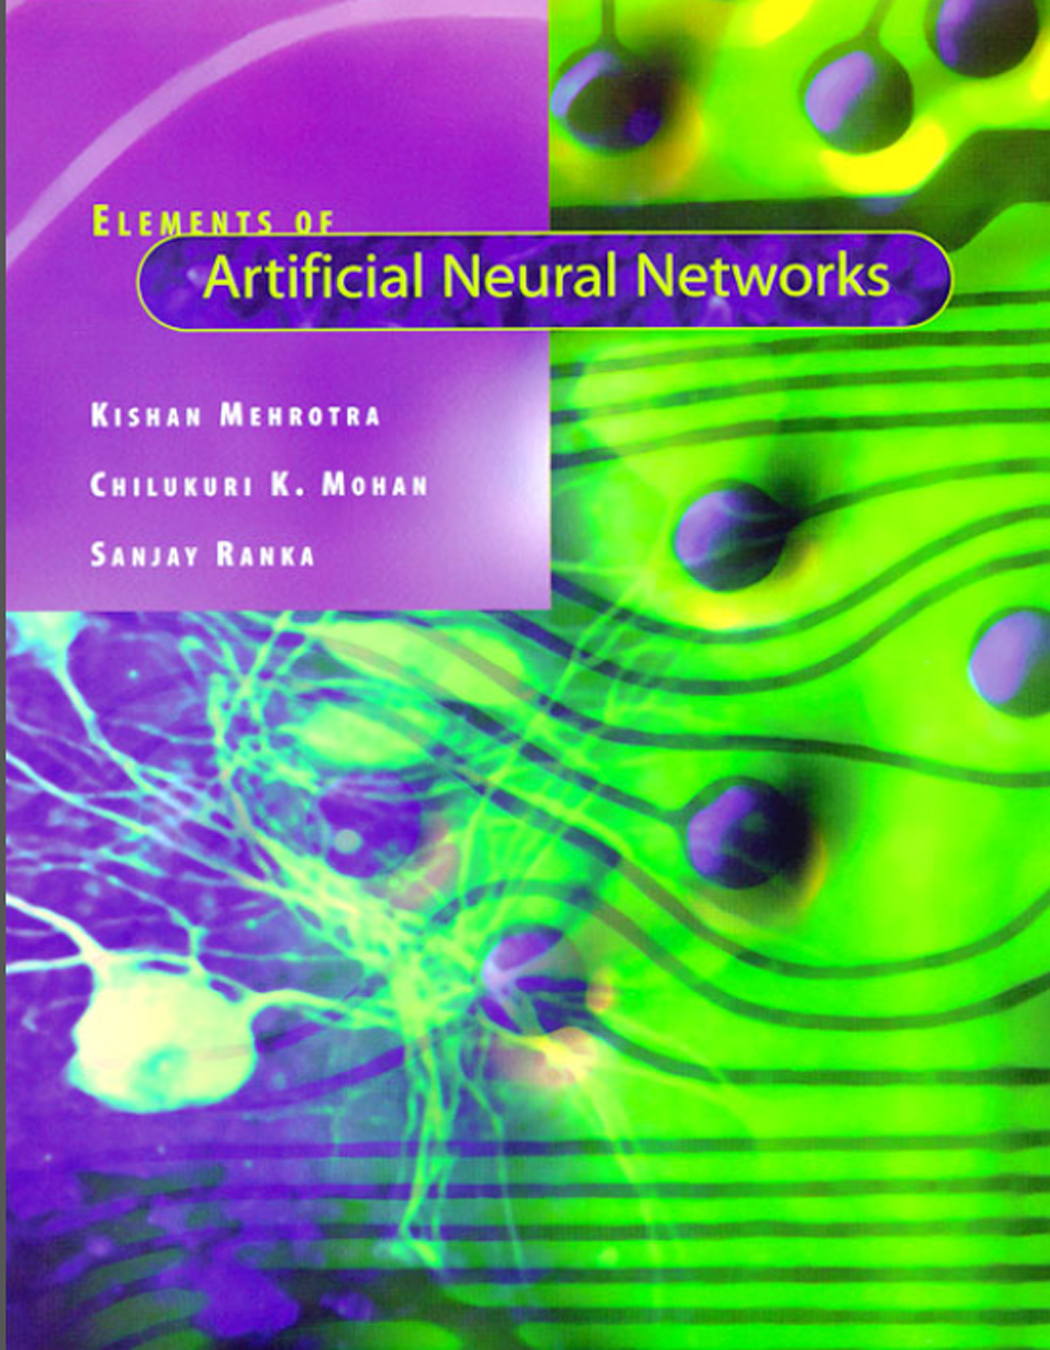 Elements of Artificial Neural Networks